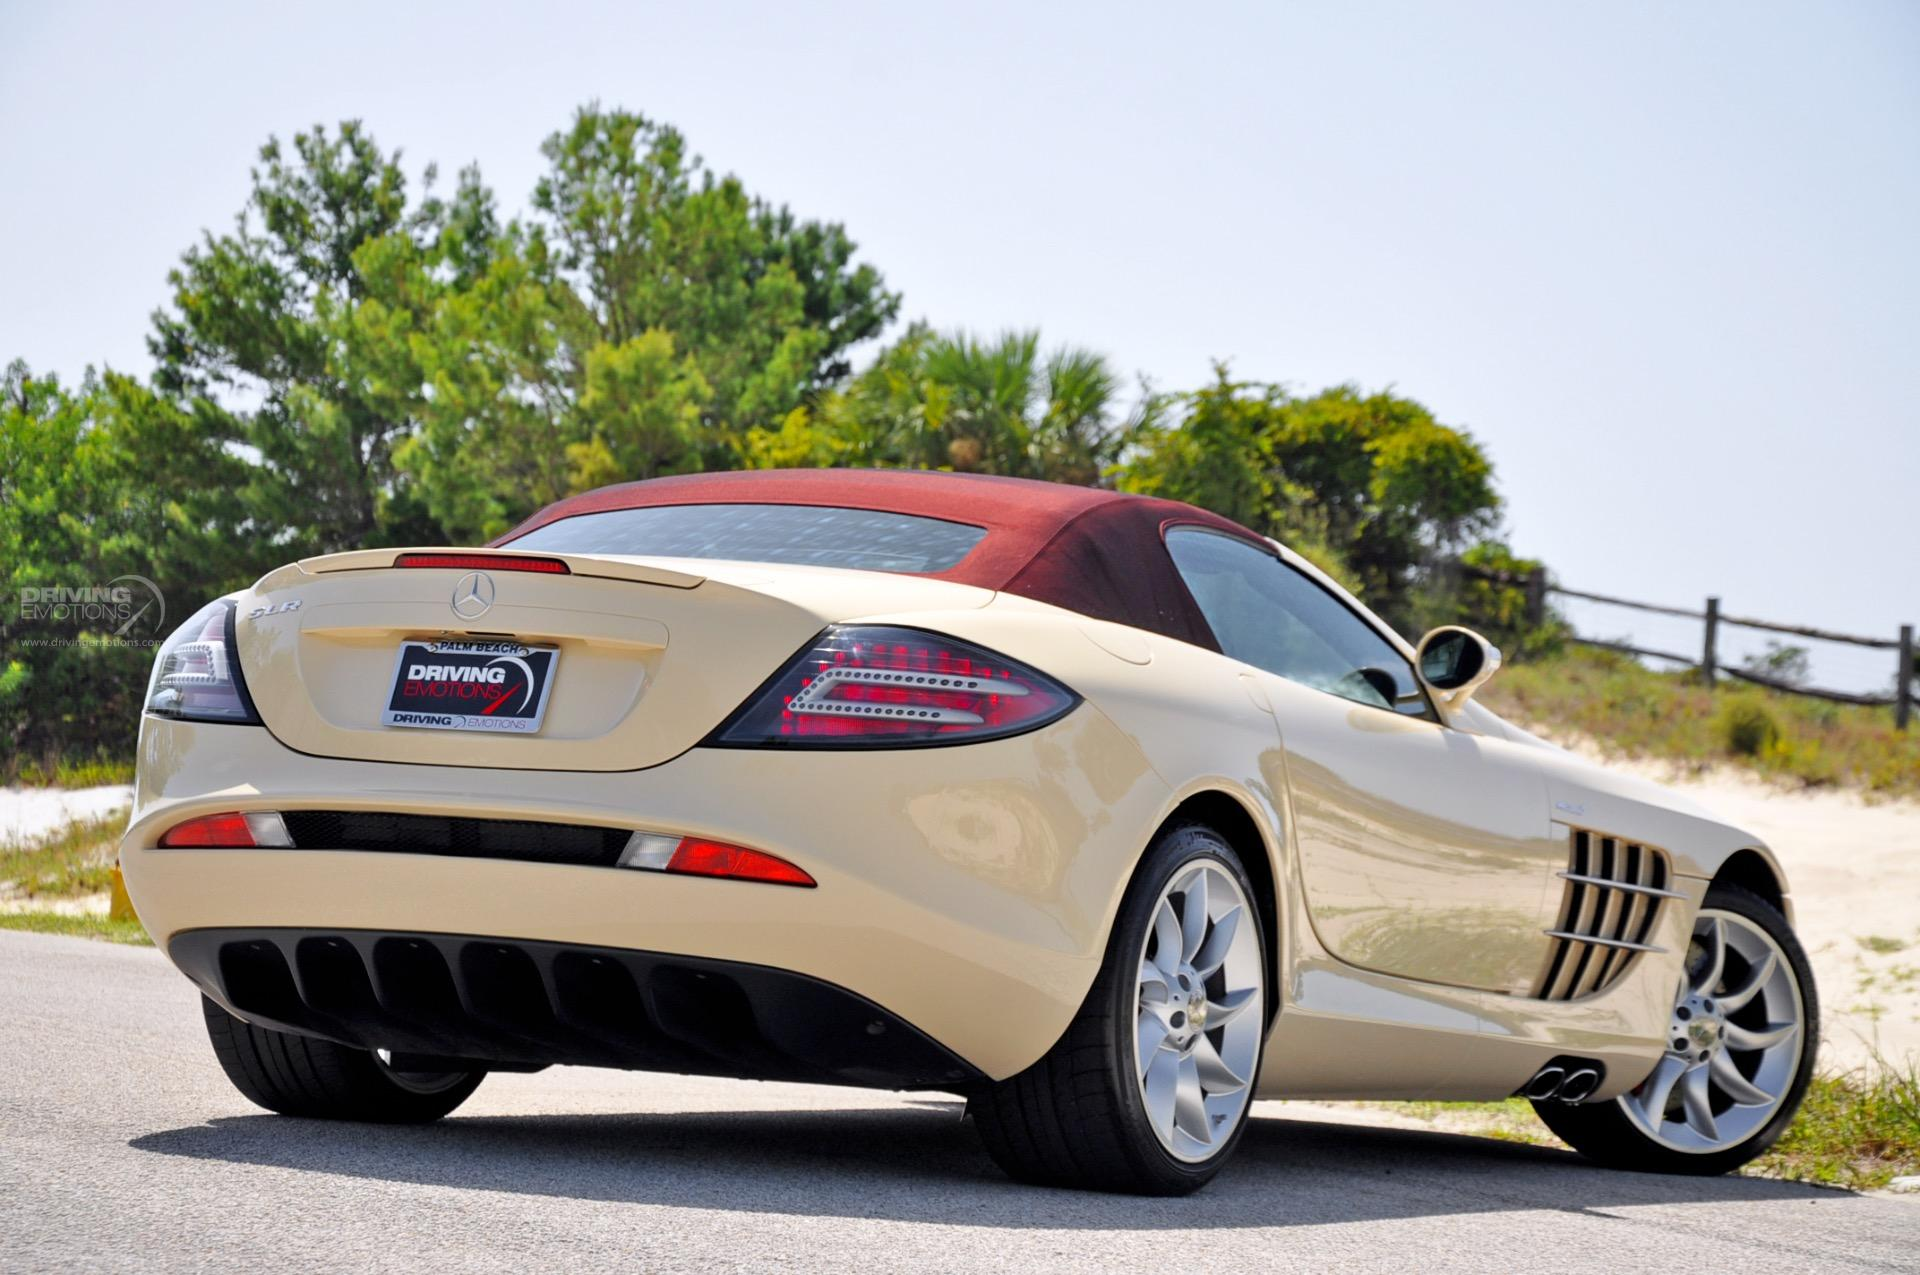 Aston Martin Stock >> 2009 Mercedes-Benz SLR McLaren Roadster SLR McLaren Stock # 5885 for sale near Lake Park, FL ...